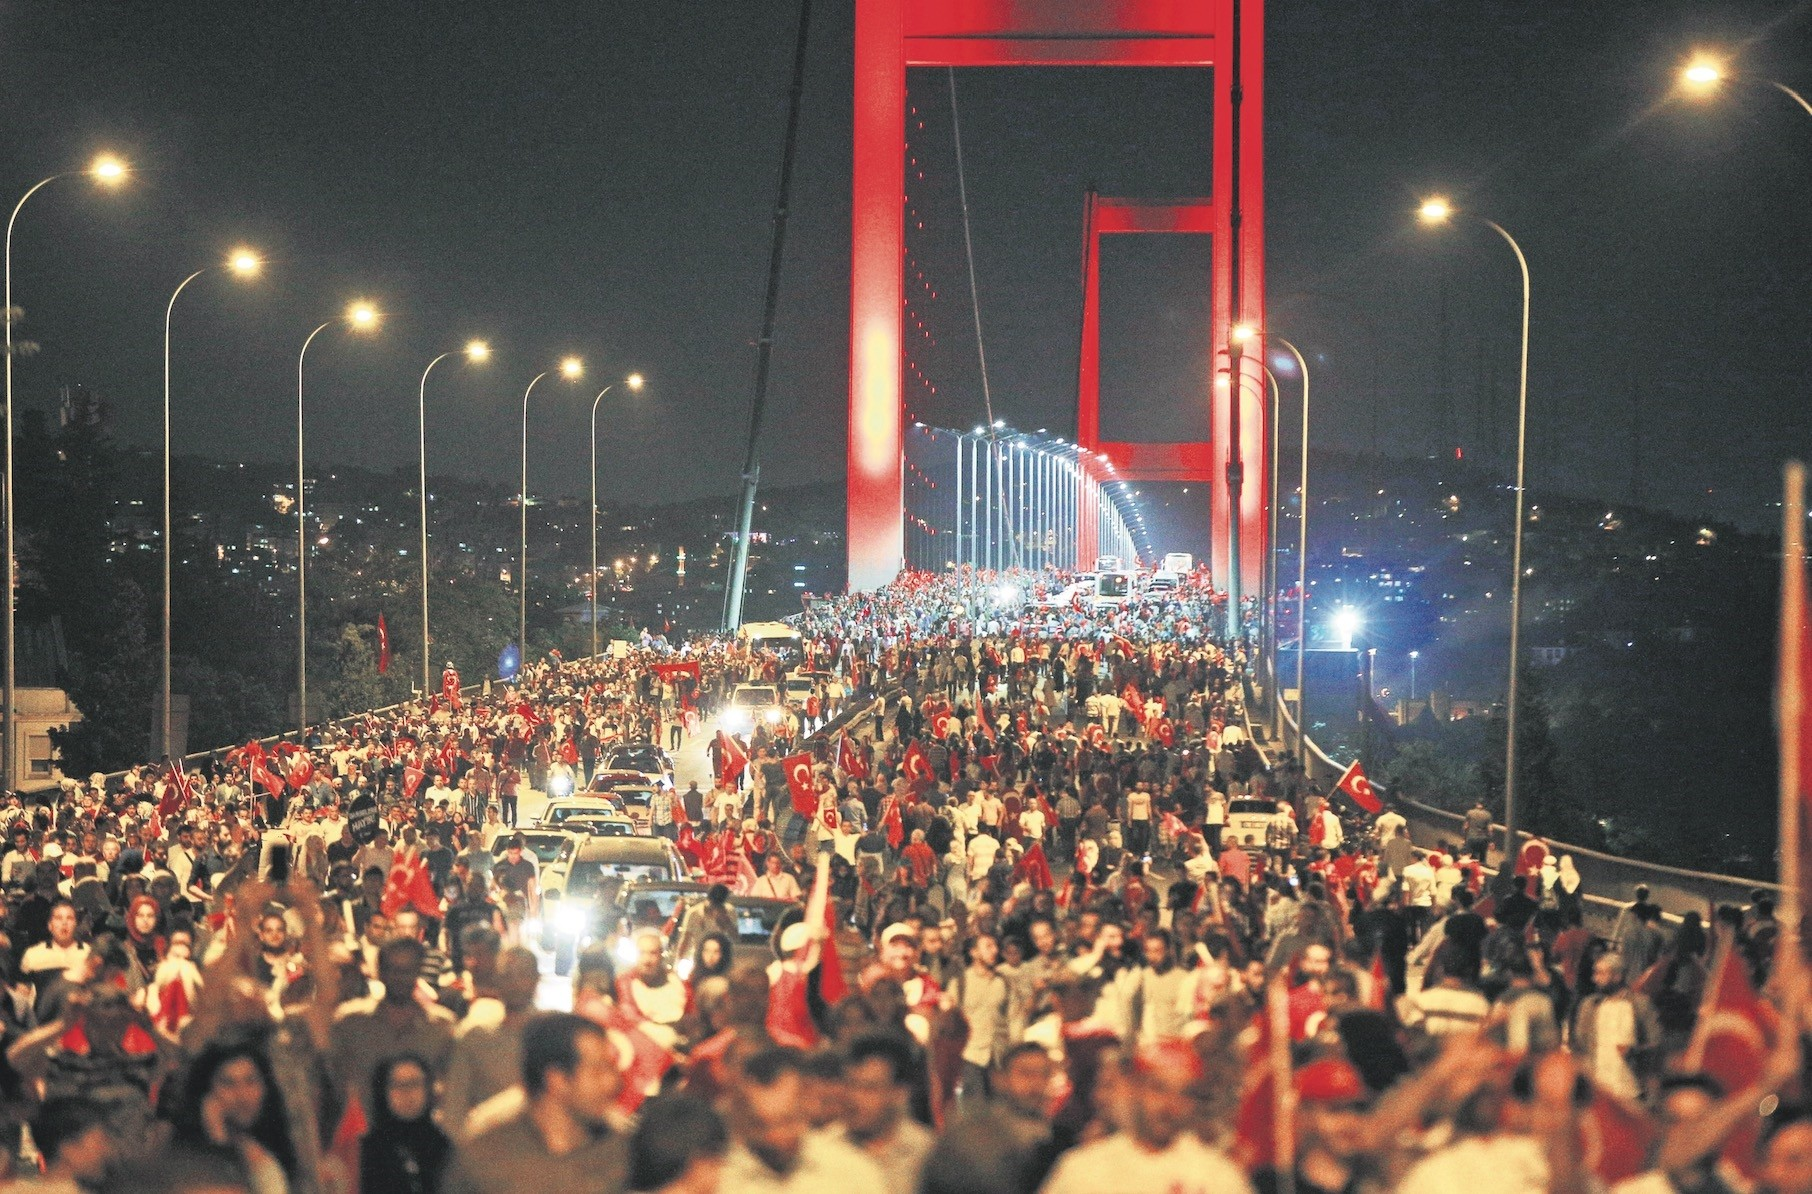 Thousands of people walk over the Bosporus Bridge u2013 now the July 15 Martyrs Bridge u2013 where hundreds of people were killed and injured during the coup attempt.